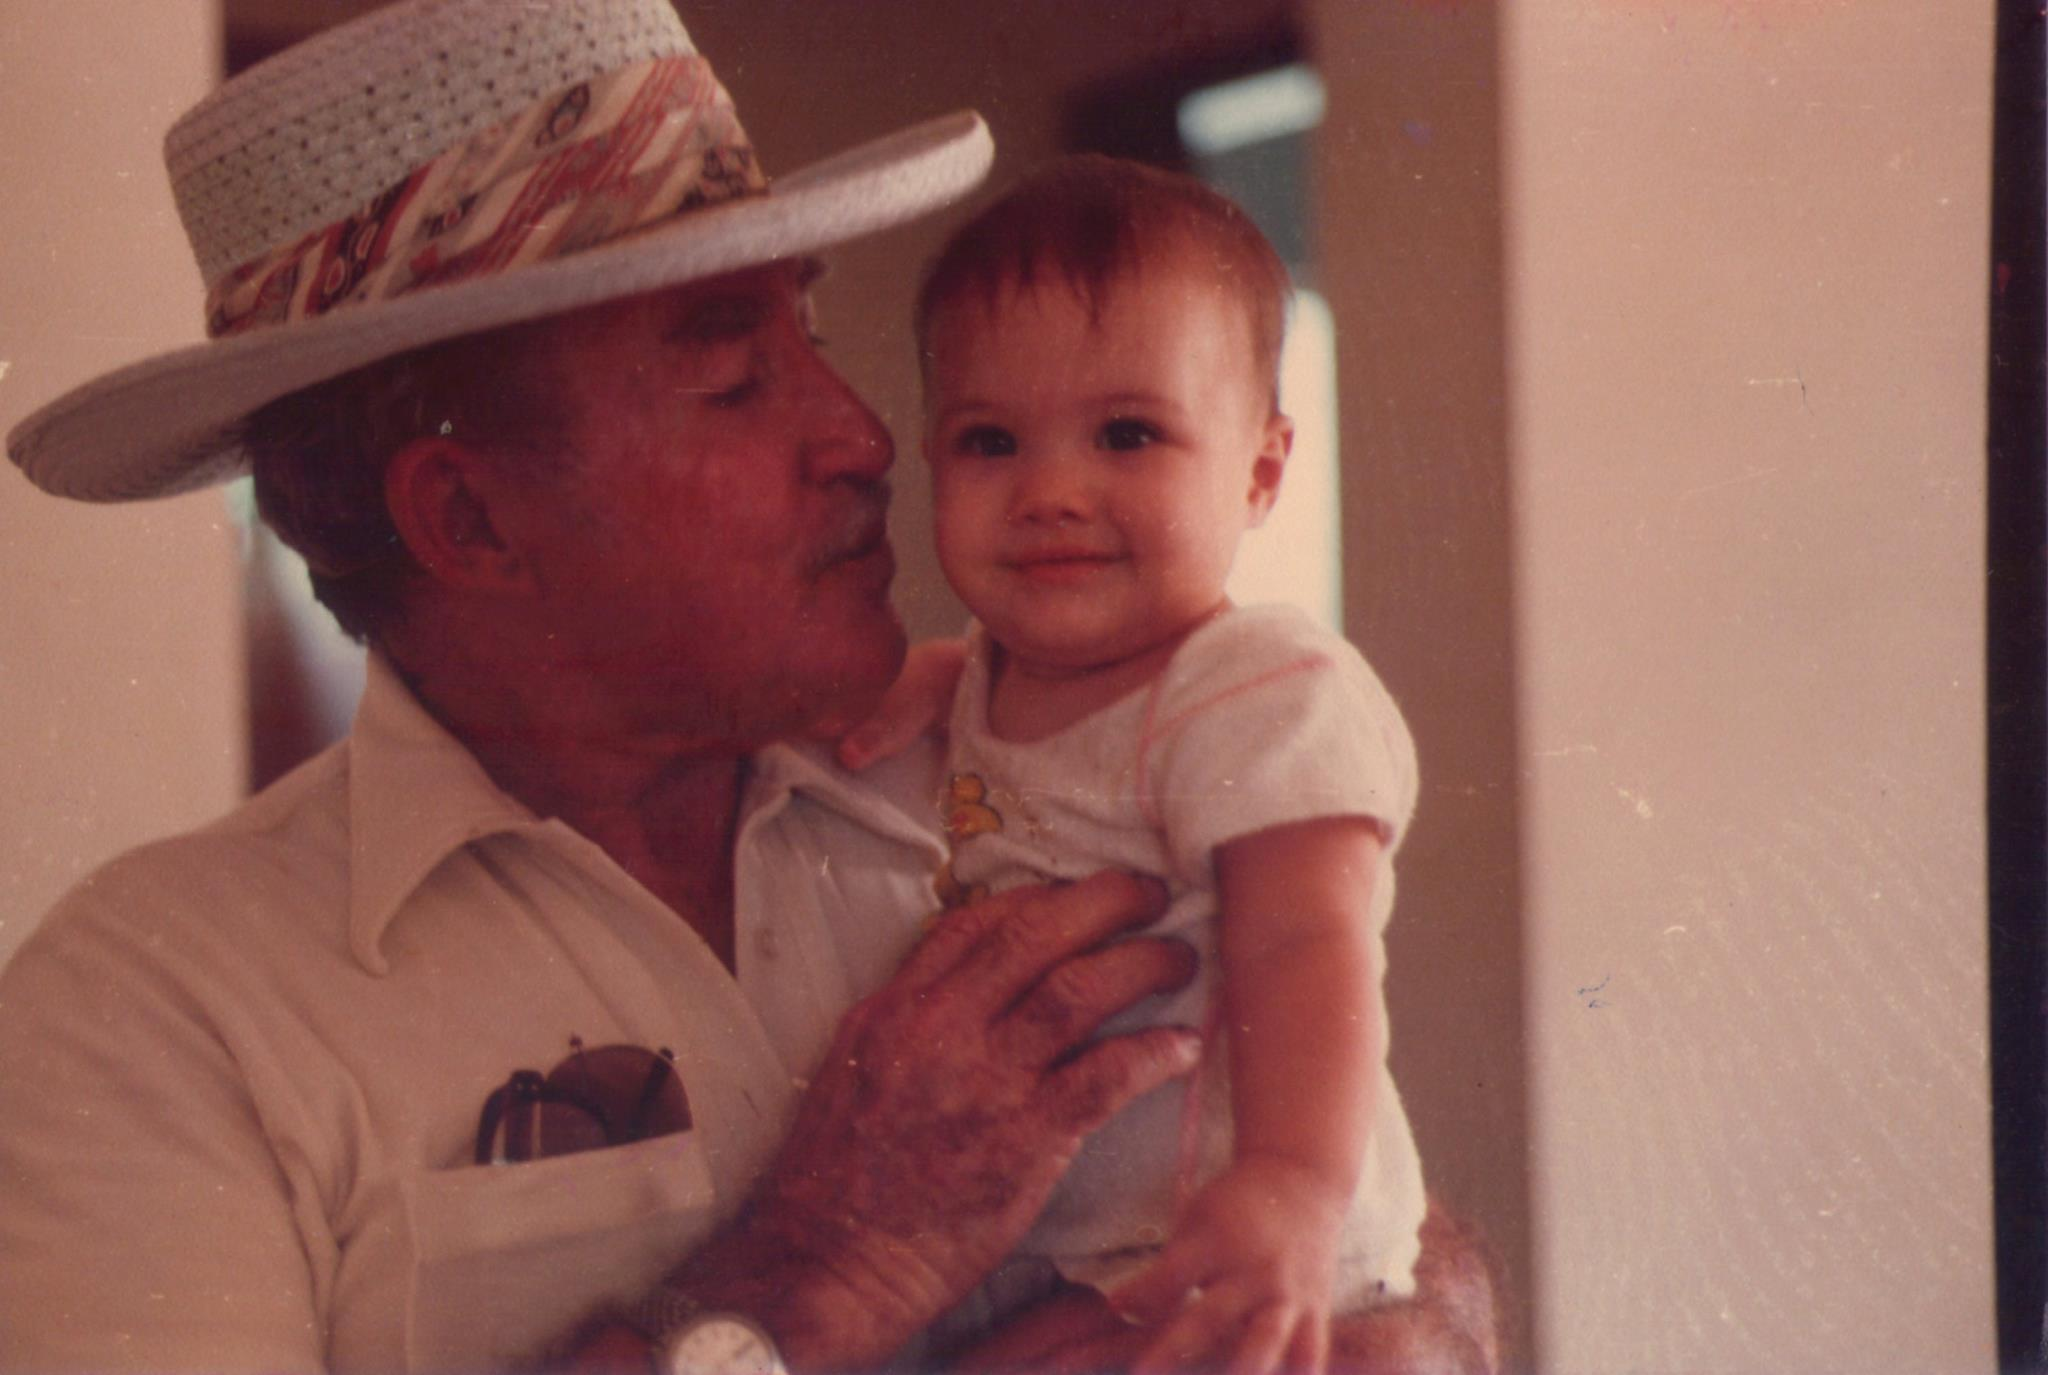 Rebecca and her grandfather.